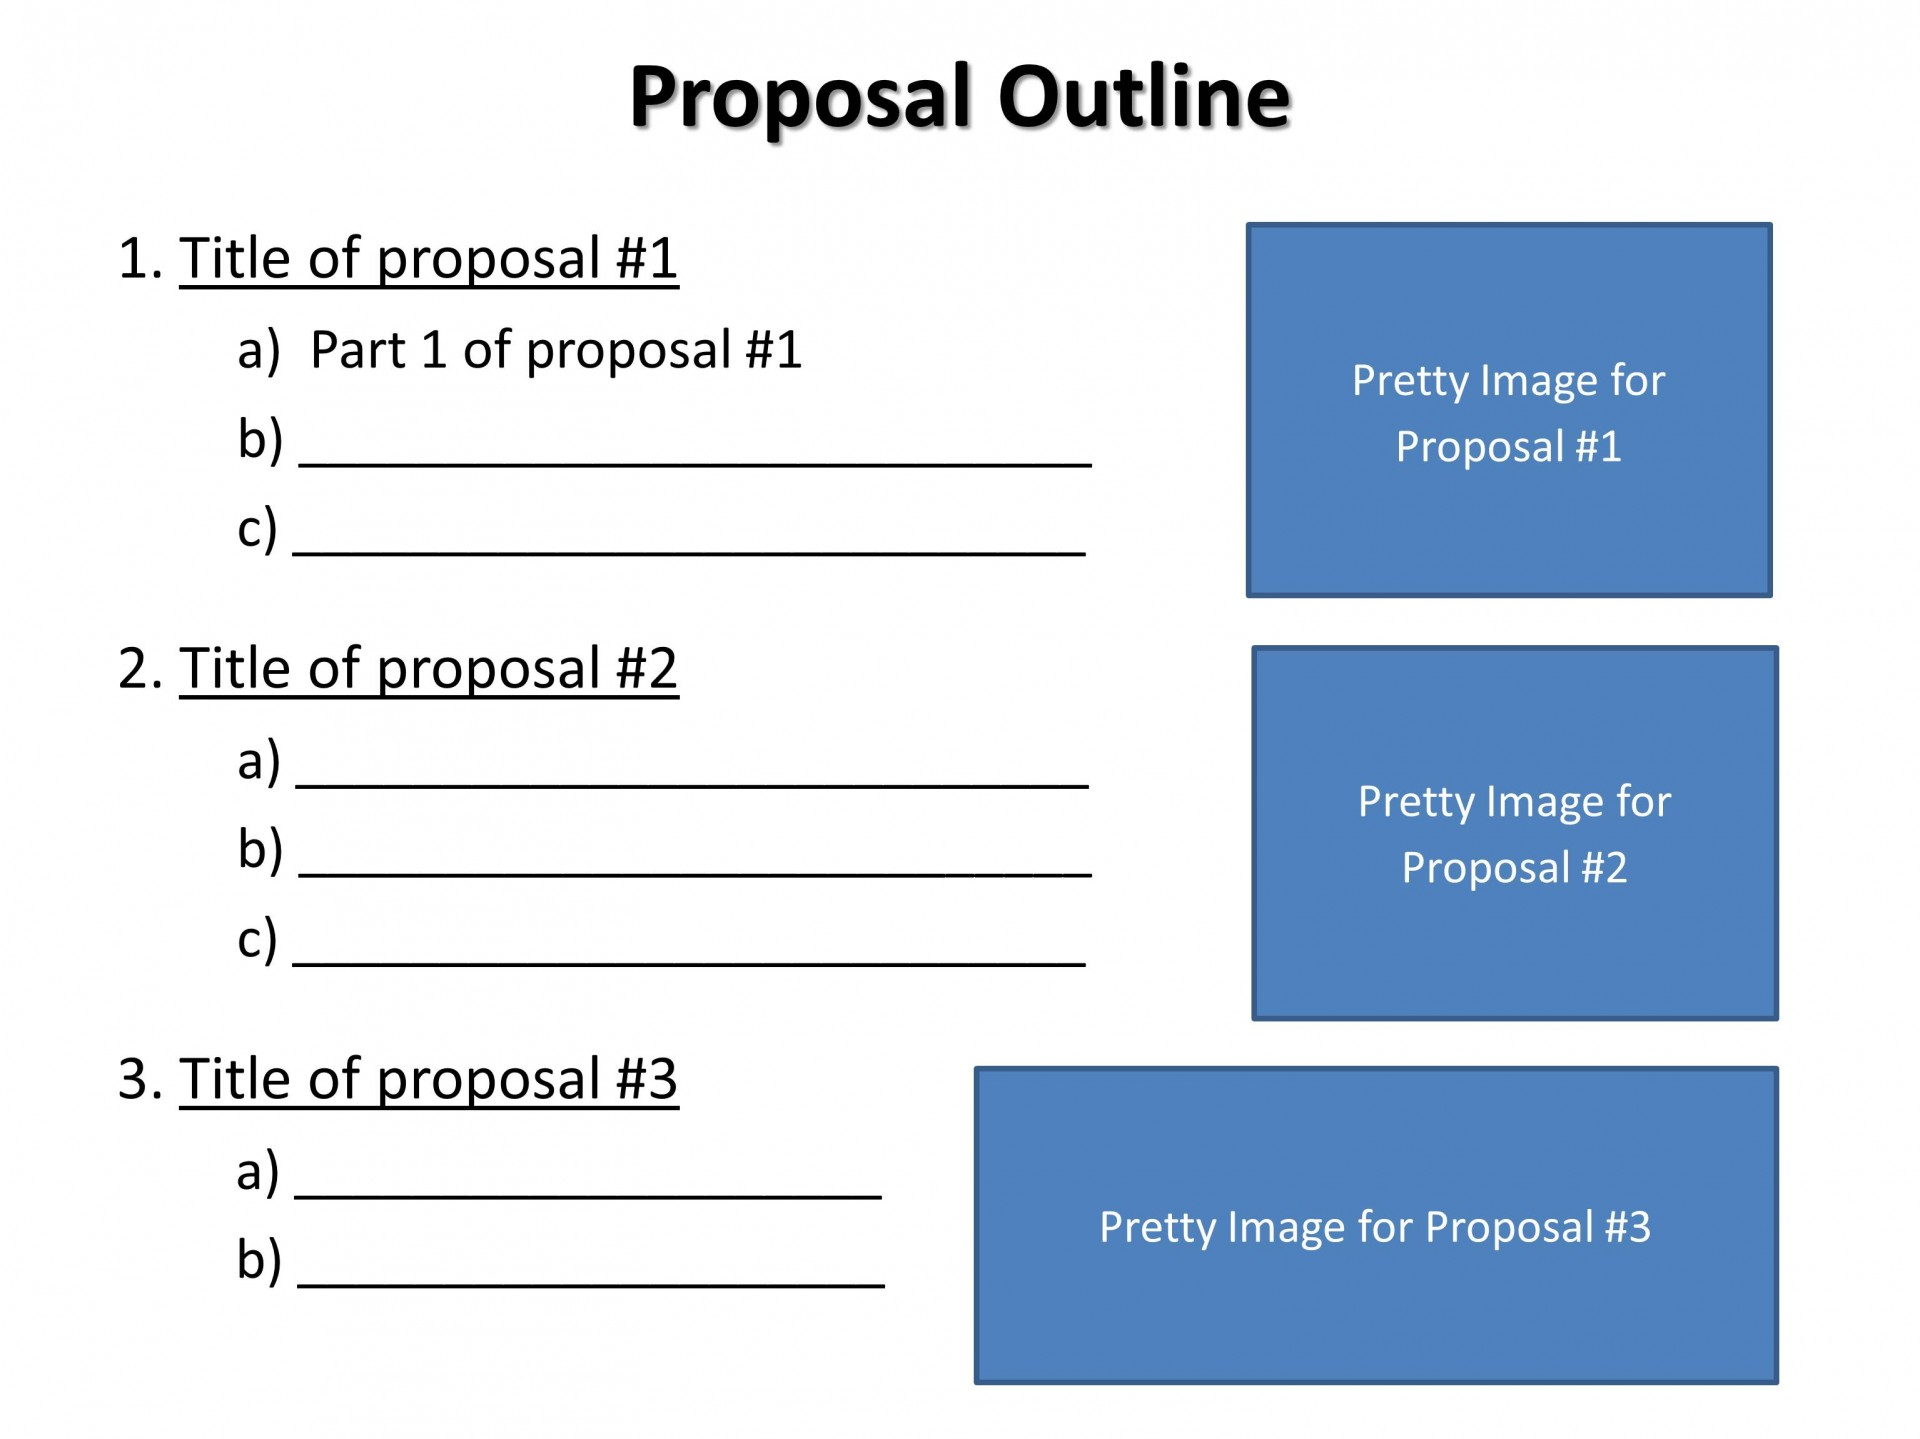 018 Research Paper Components Of Outline Proposal Imposing Main A 1920